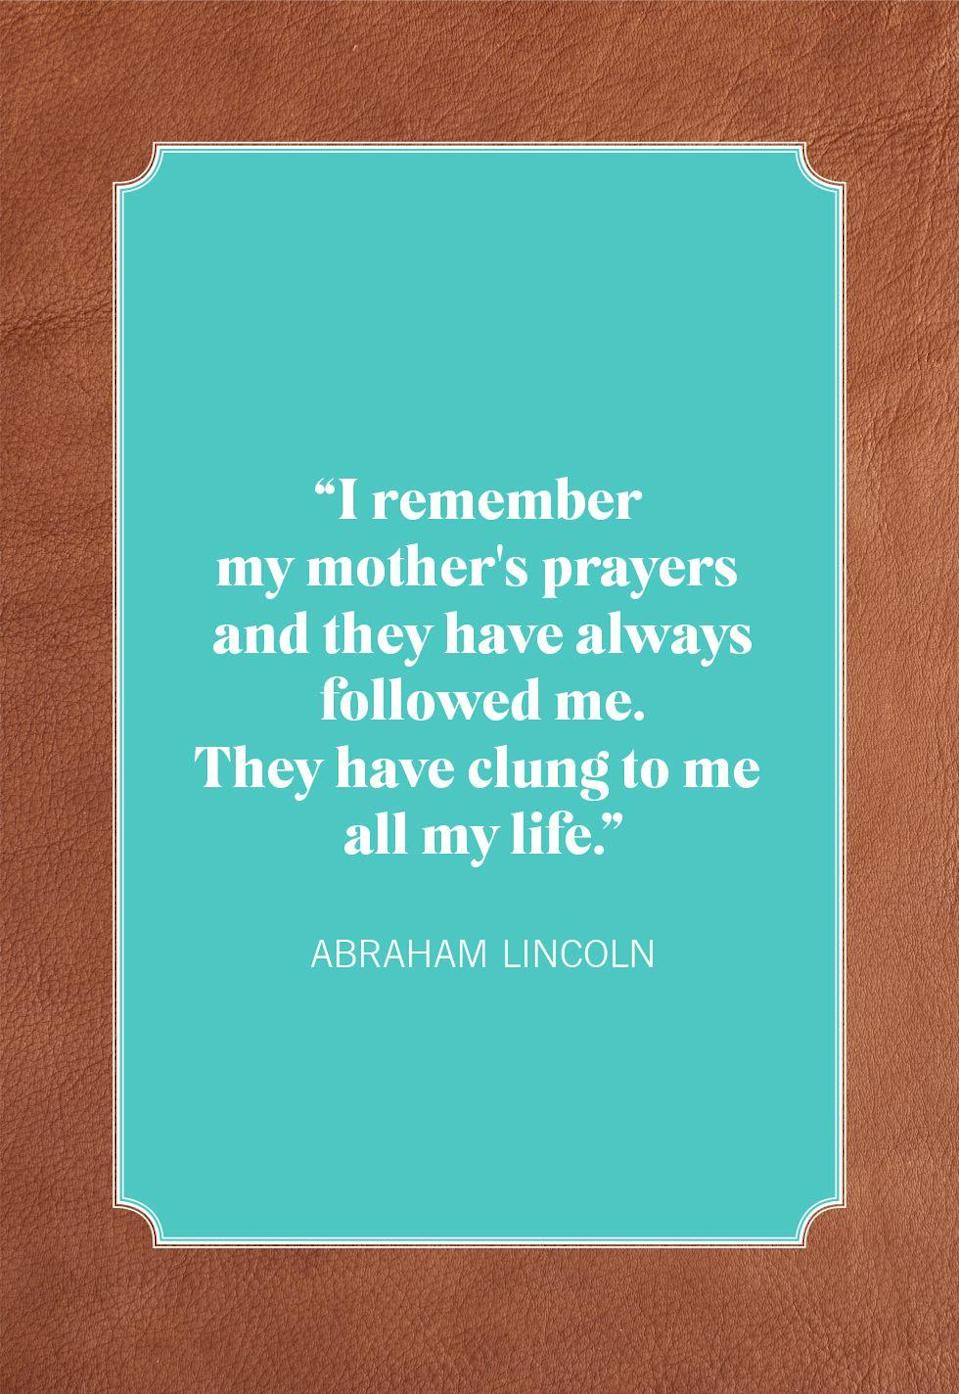 """<p>""""I remember my mother's prayers and they have always followed me. They have clung to me all my life.""""</p>"""